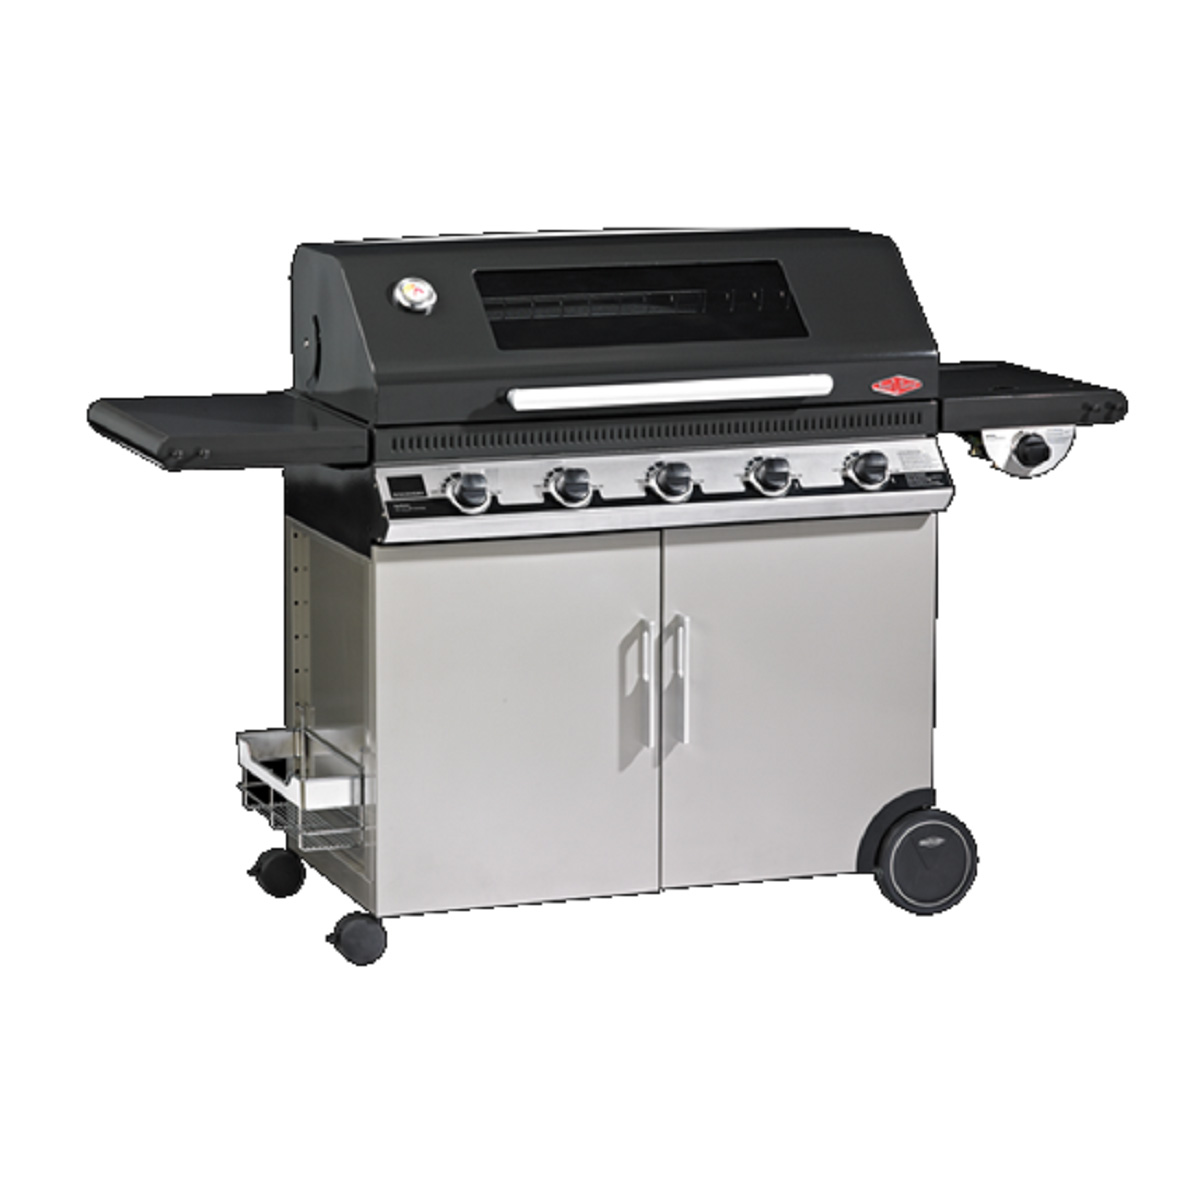 Beefeater BBQ 47852